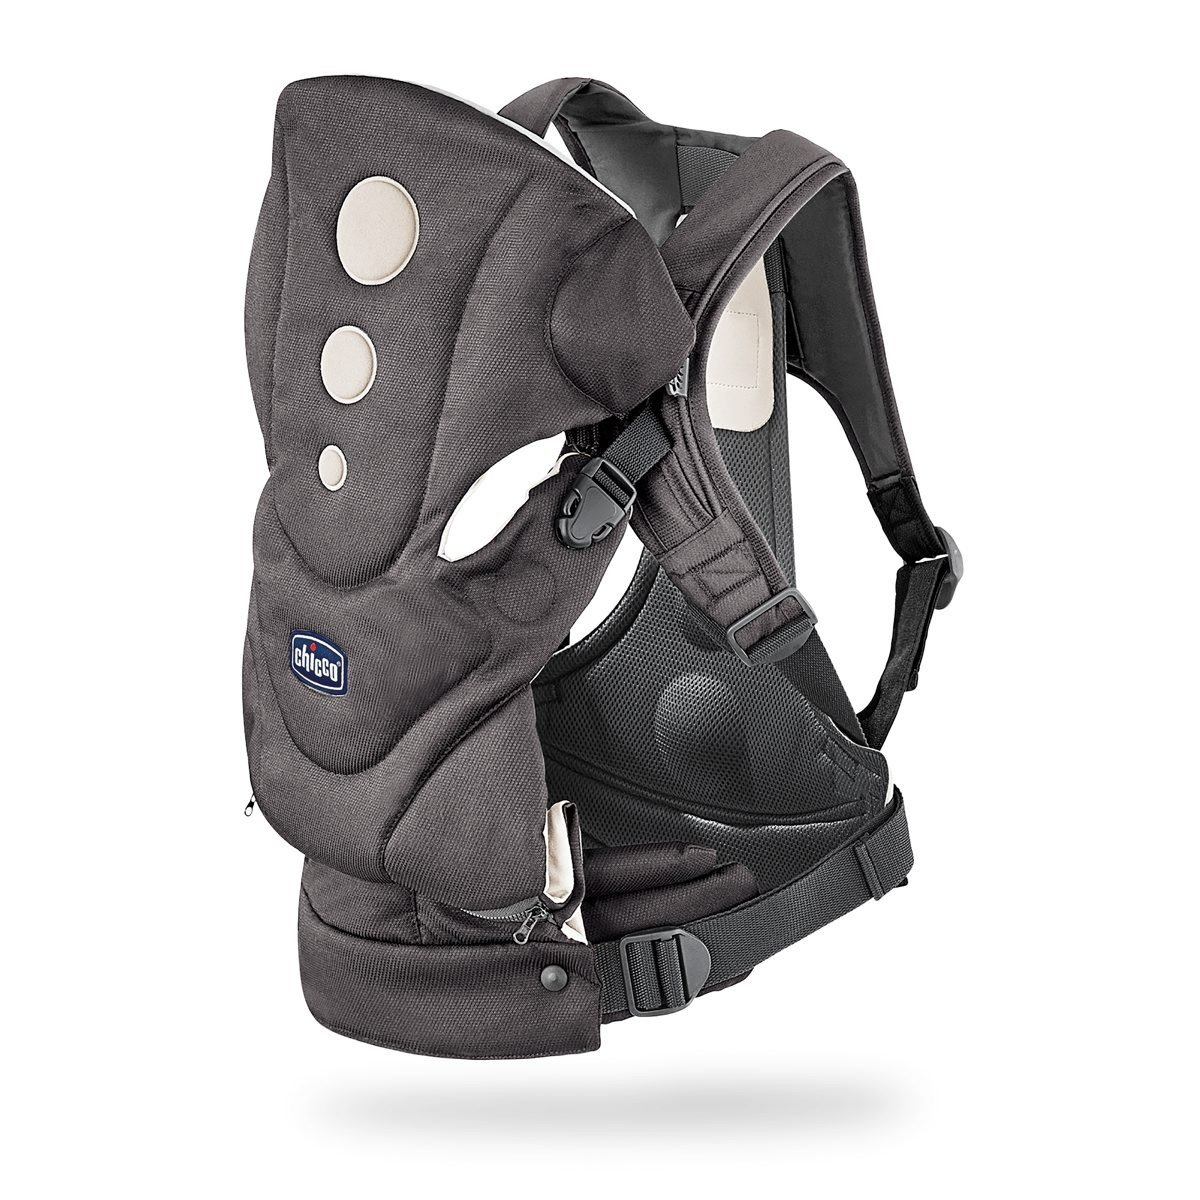 Chicco Close to You Ombra Baby Carrier 07079810500000